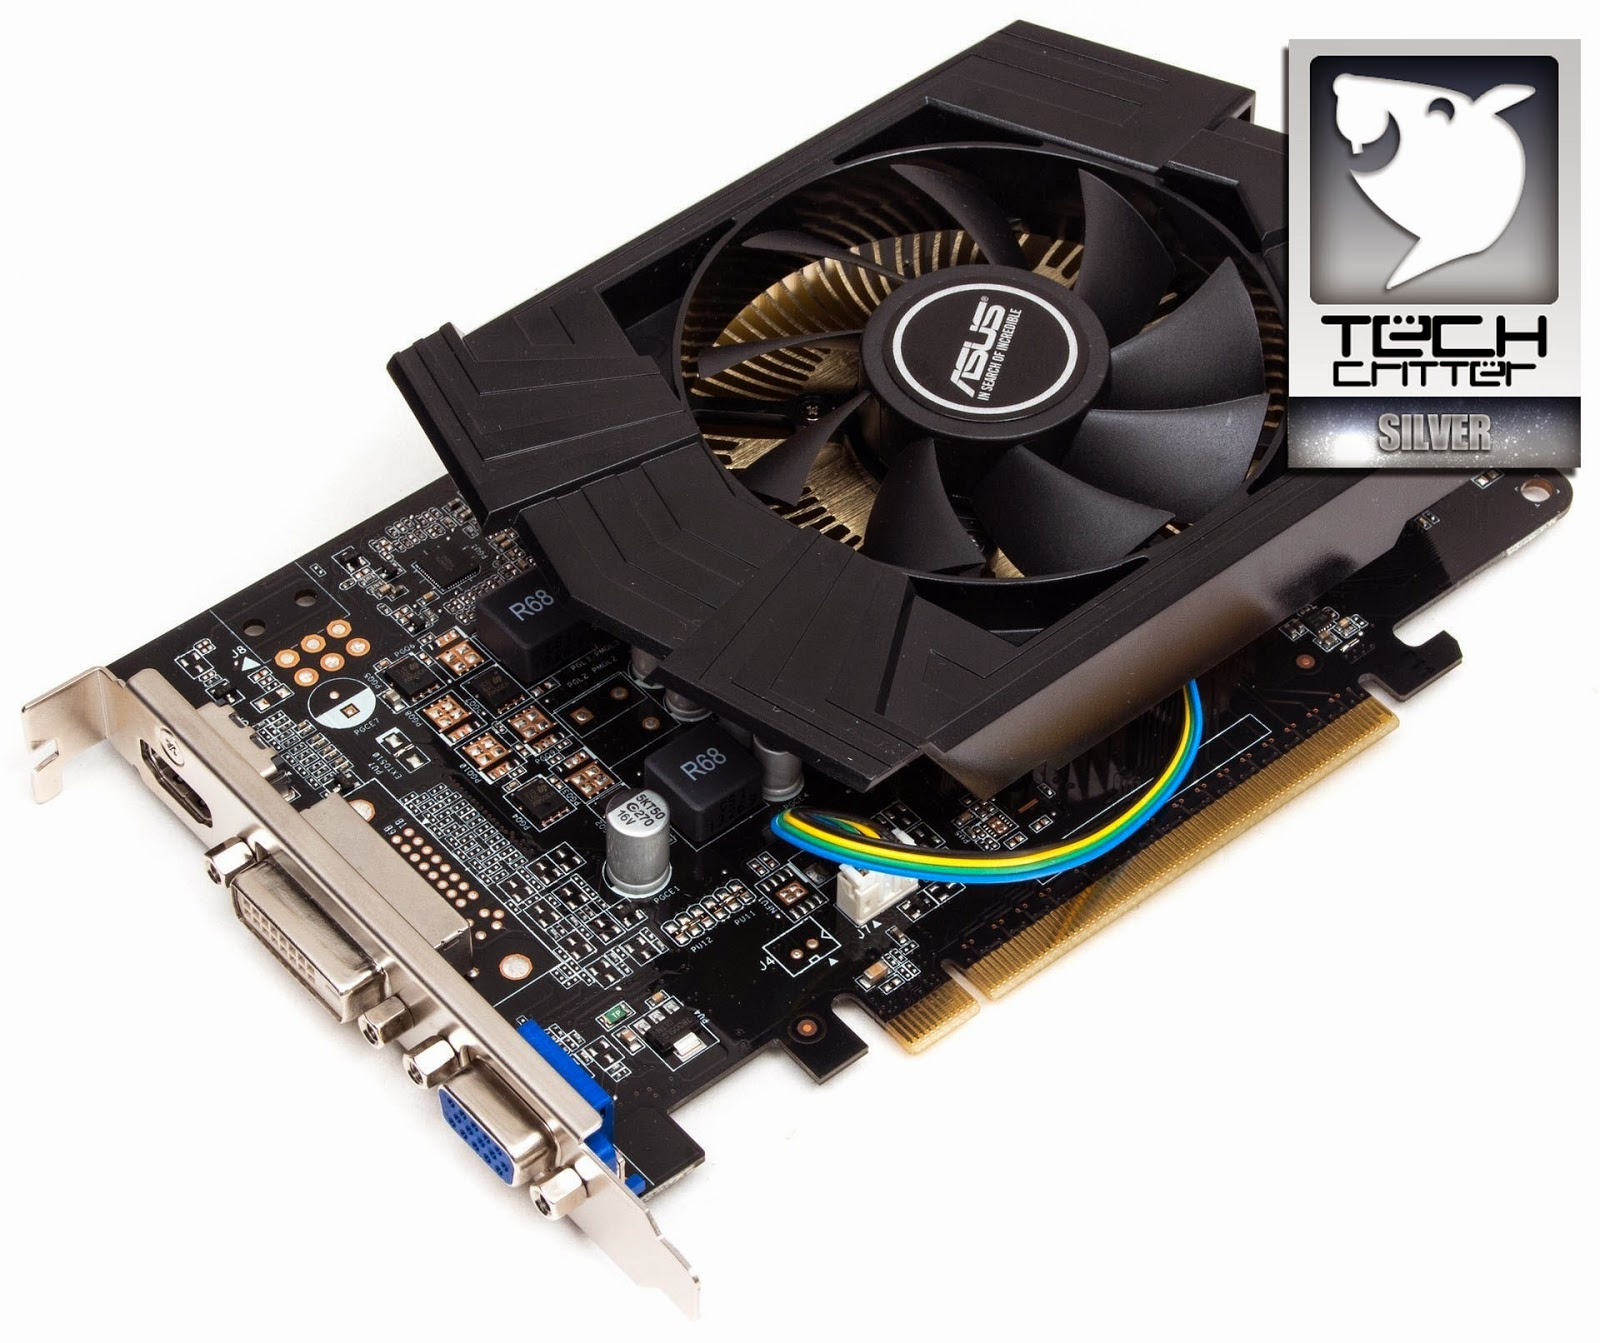 ASUS GTX 750 Performance Review 14